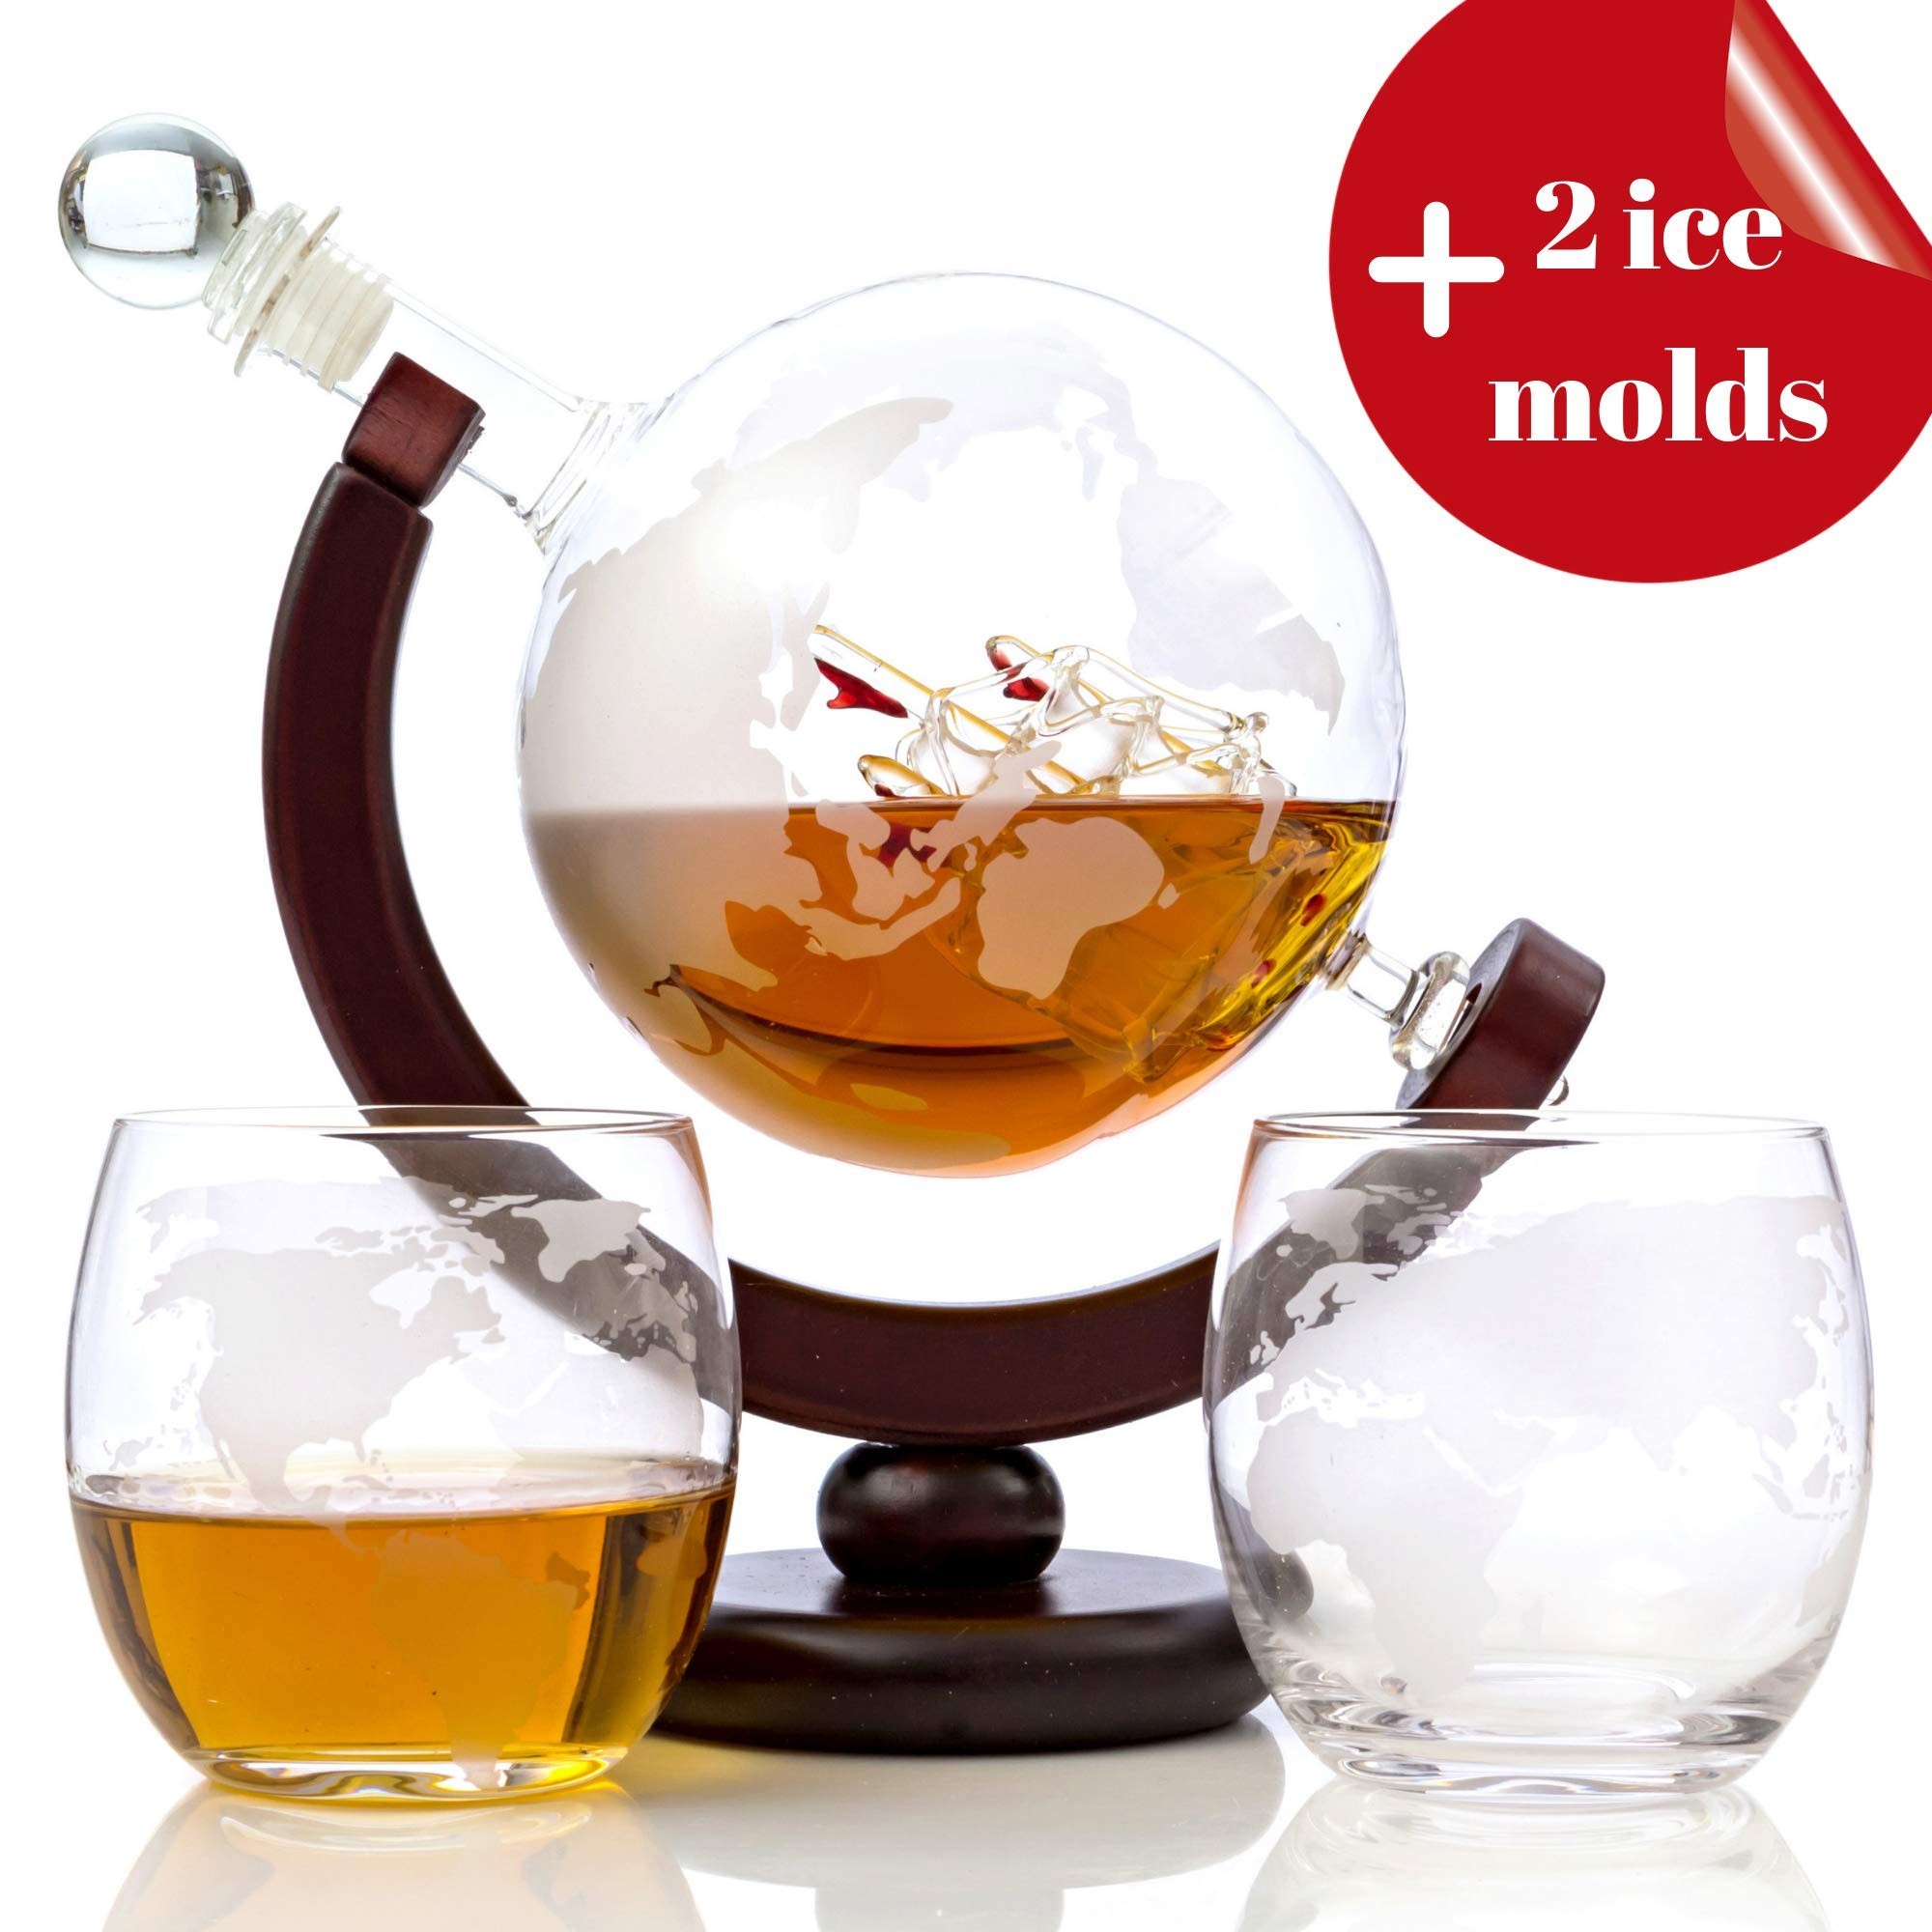 Whiskey Globe Decanter Set (28 Oz) for Liquor ● Bourbon ● Vodka ● with 2 Glasses (10 Oz) and More in Premium Gift Box - Home Bar Accessories for Men - Perfect for All Kinds of Alcohol Drinks by Kemstood